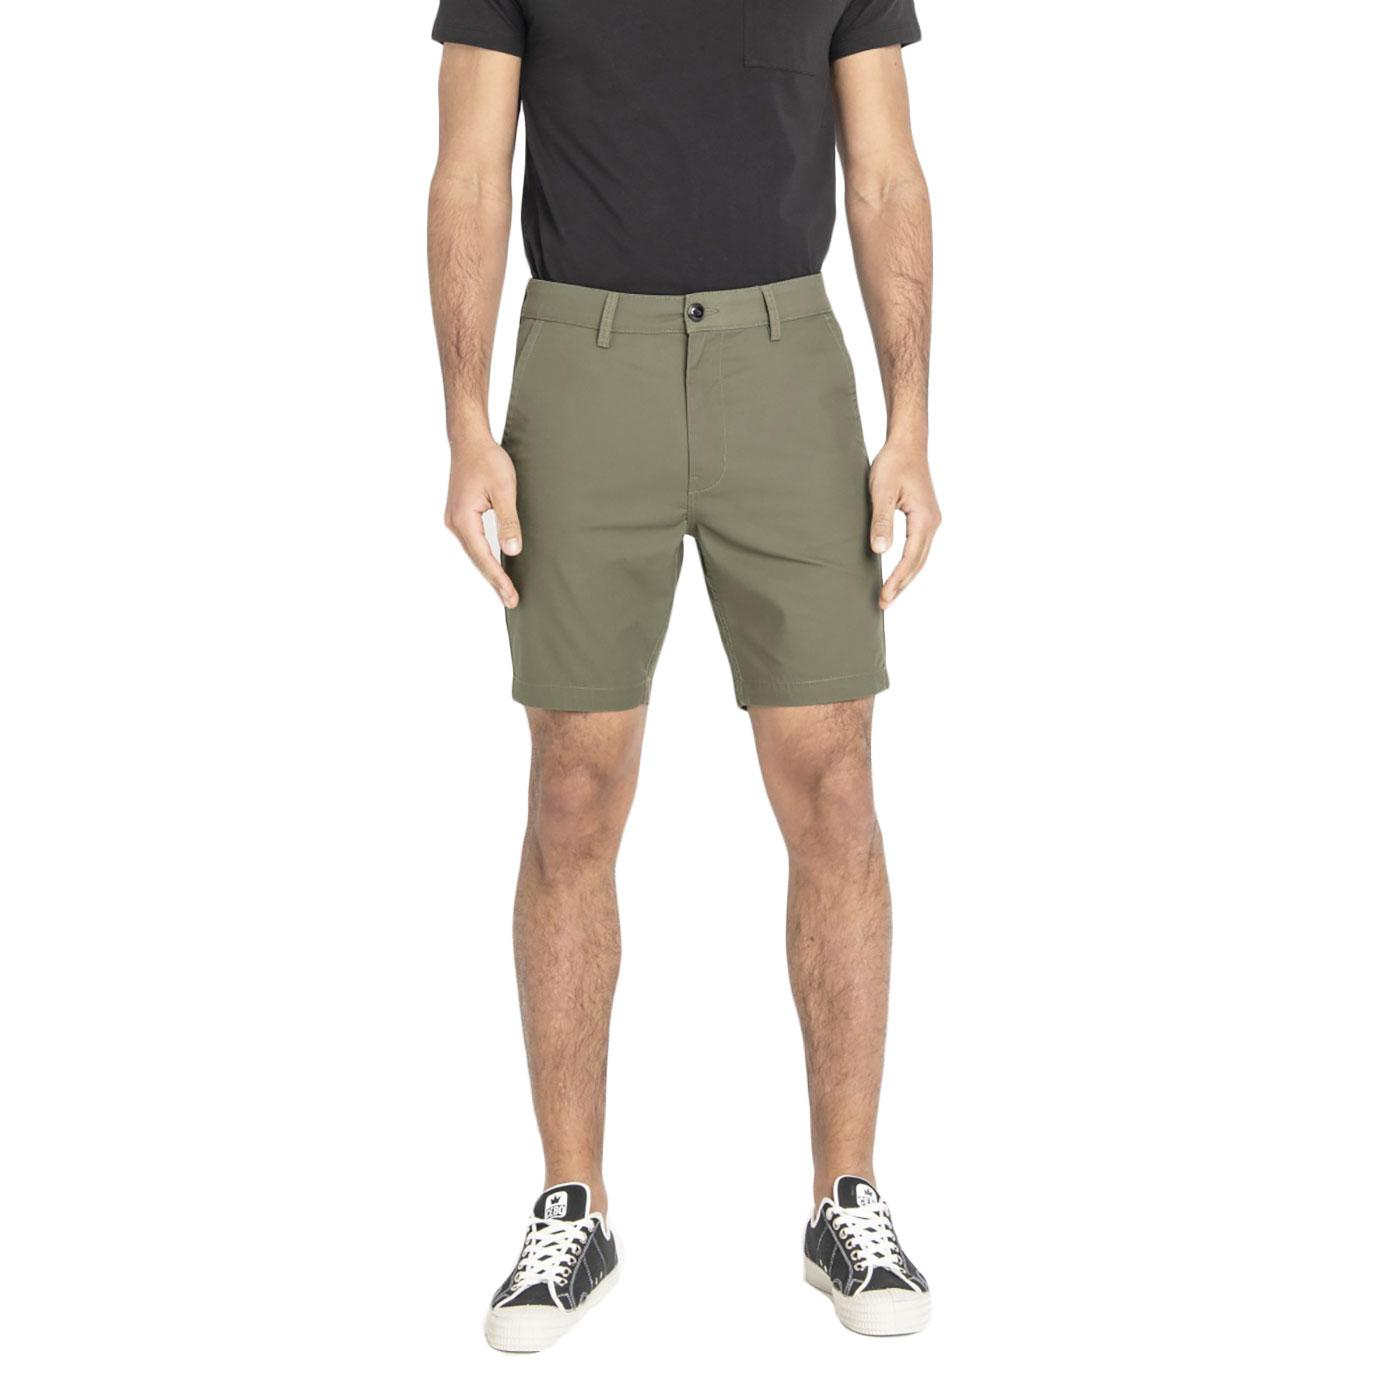 LEE Men's Retro Slim Chino Shorts (Ivy Green)